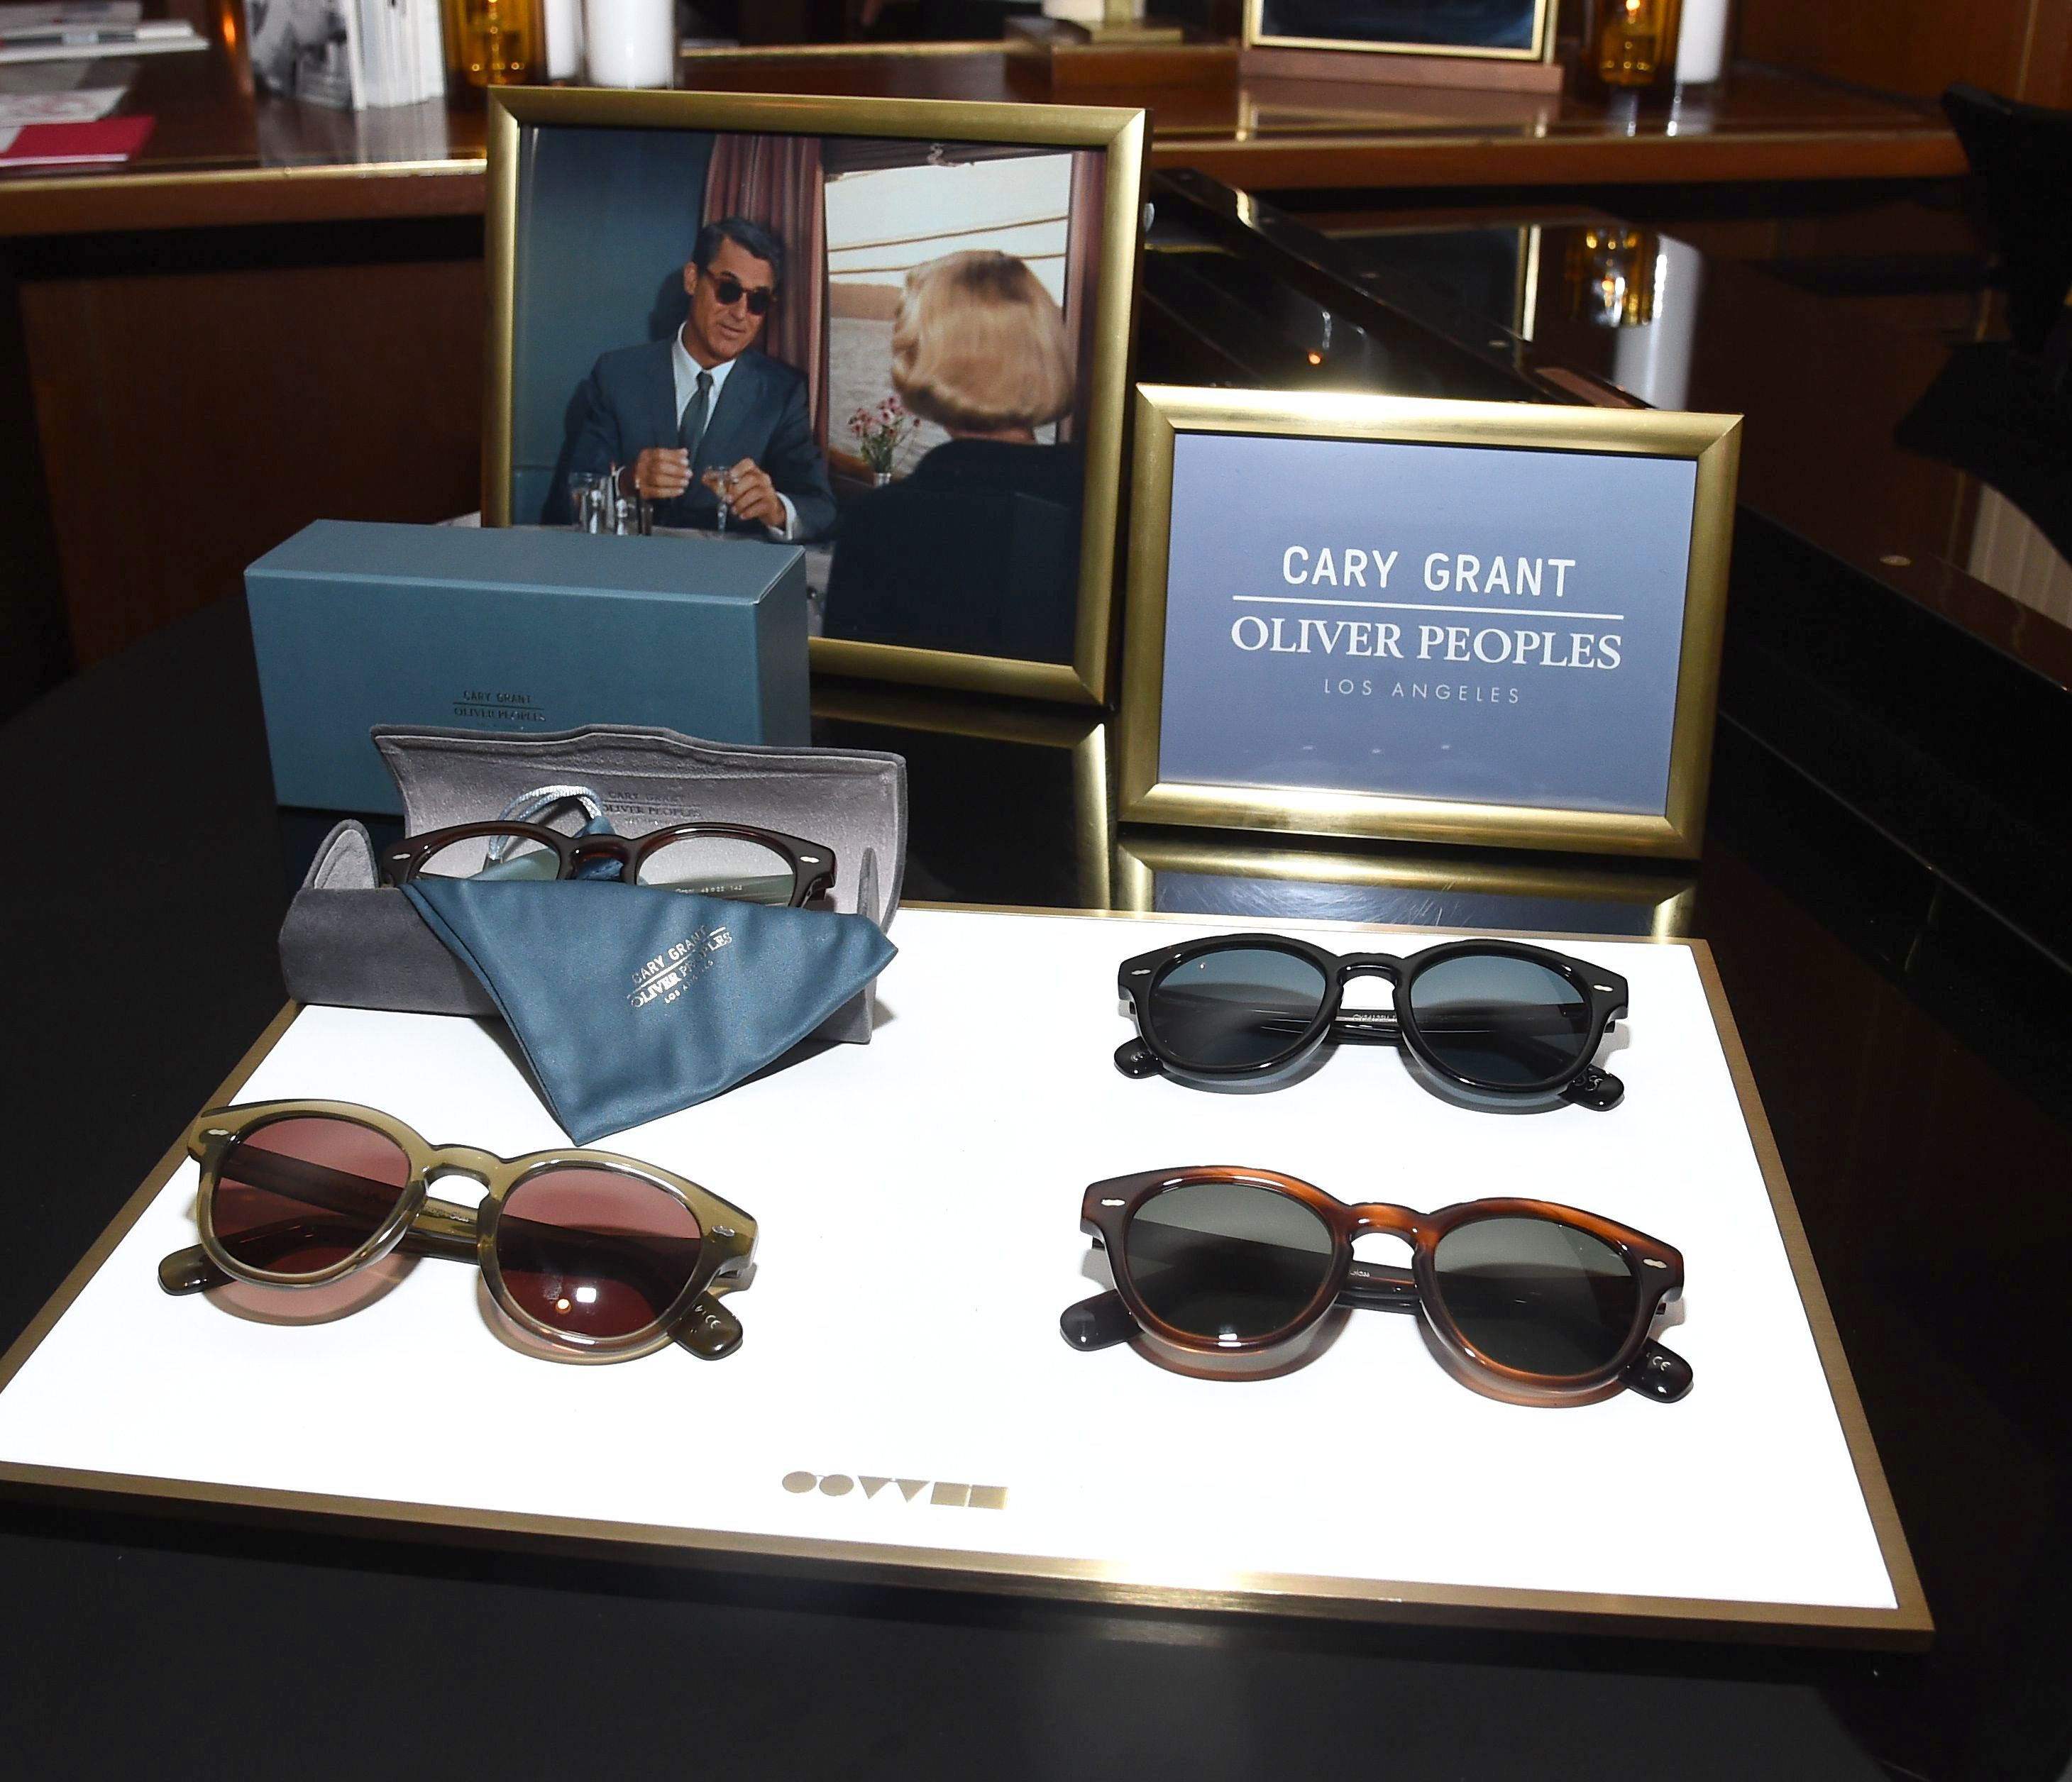 Oliver Peoples Glasses and SunglassesOliver Peoples x Cary Grant Dinner Party, Los Angeles, USA - 04 Apr 2019